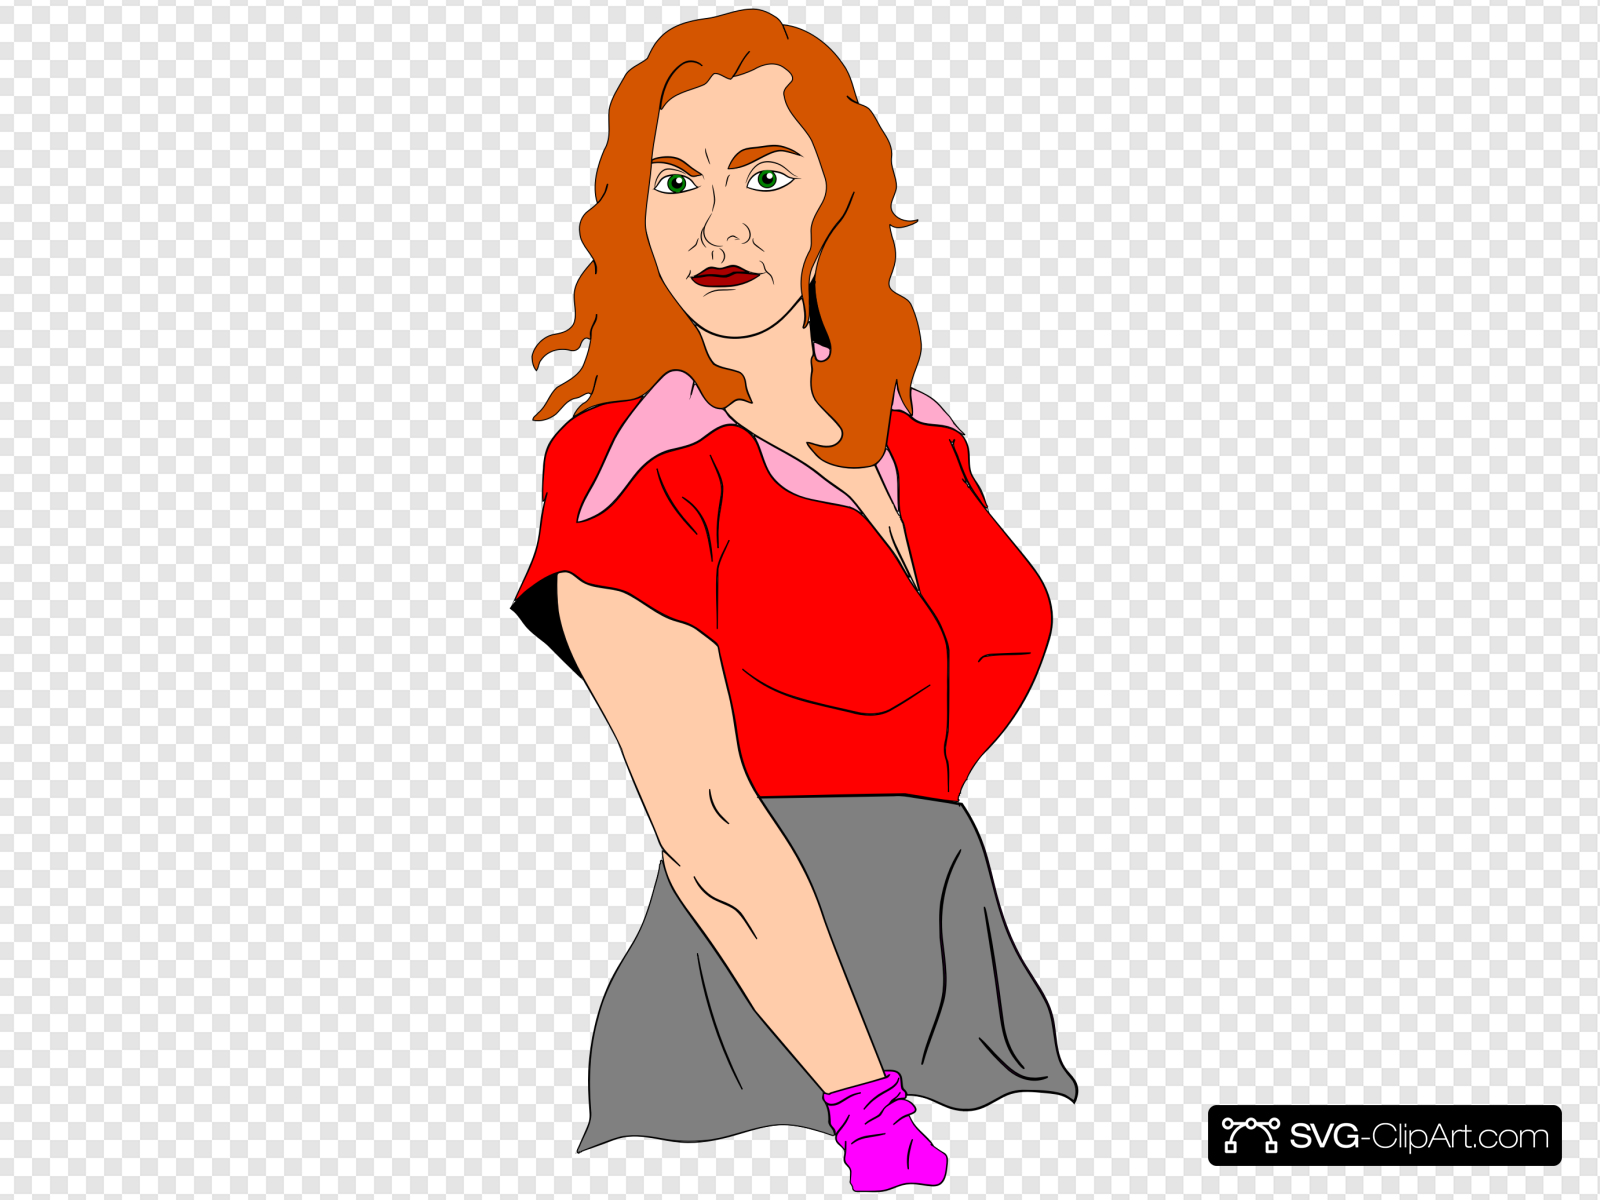 Strong Lady Clip art, Icon and SVG.